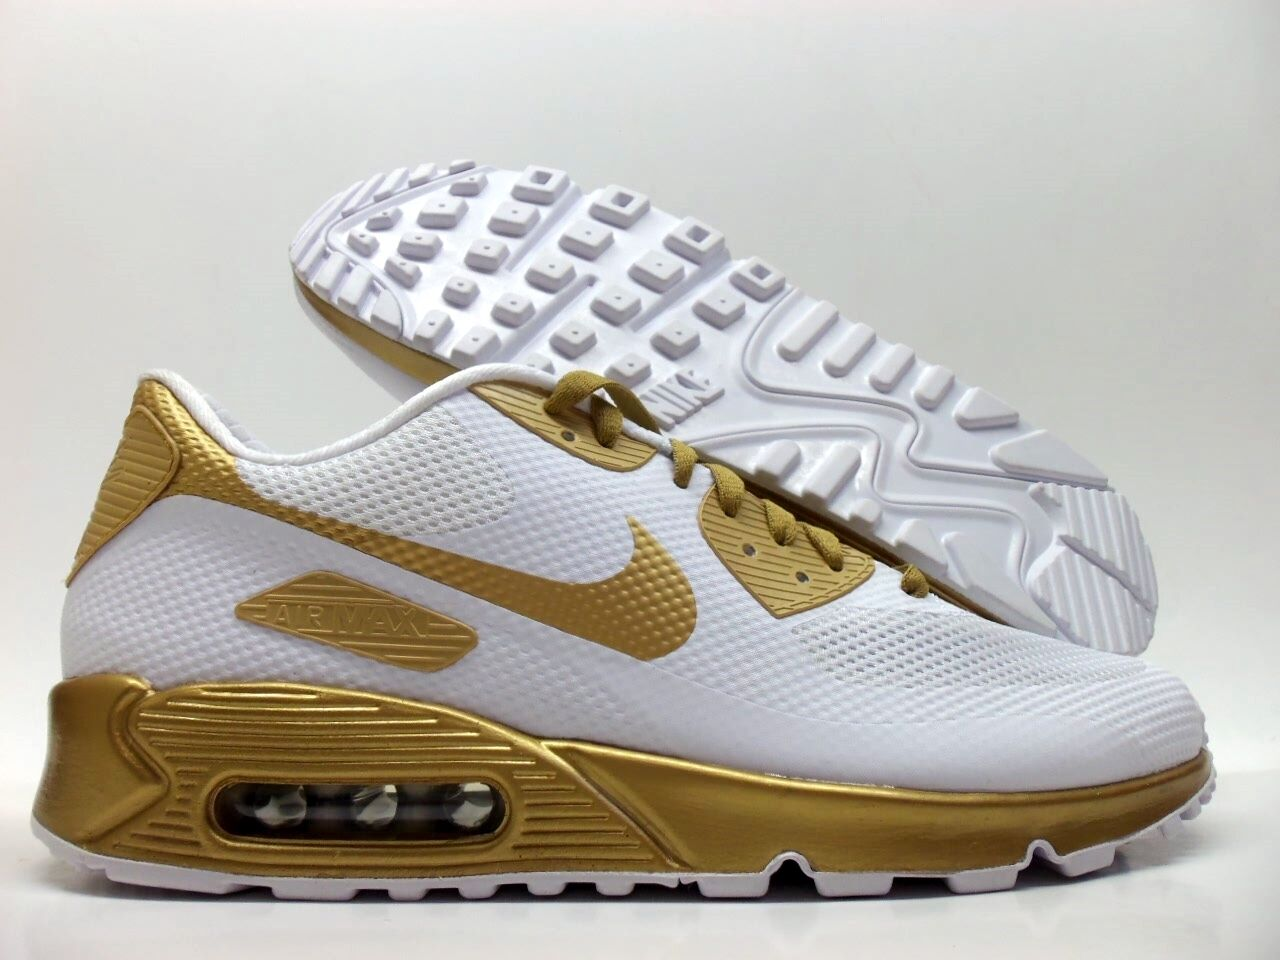 NIKE AIR MAX 90 HYPERFUSE PREMIUM ID WHITE gold SIZE MEN'S 9.5 [822560-997]